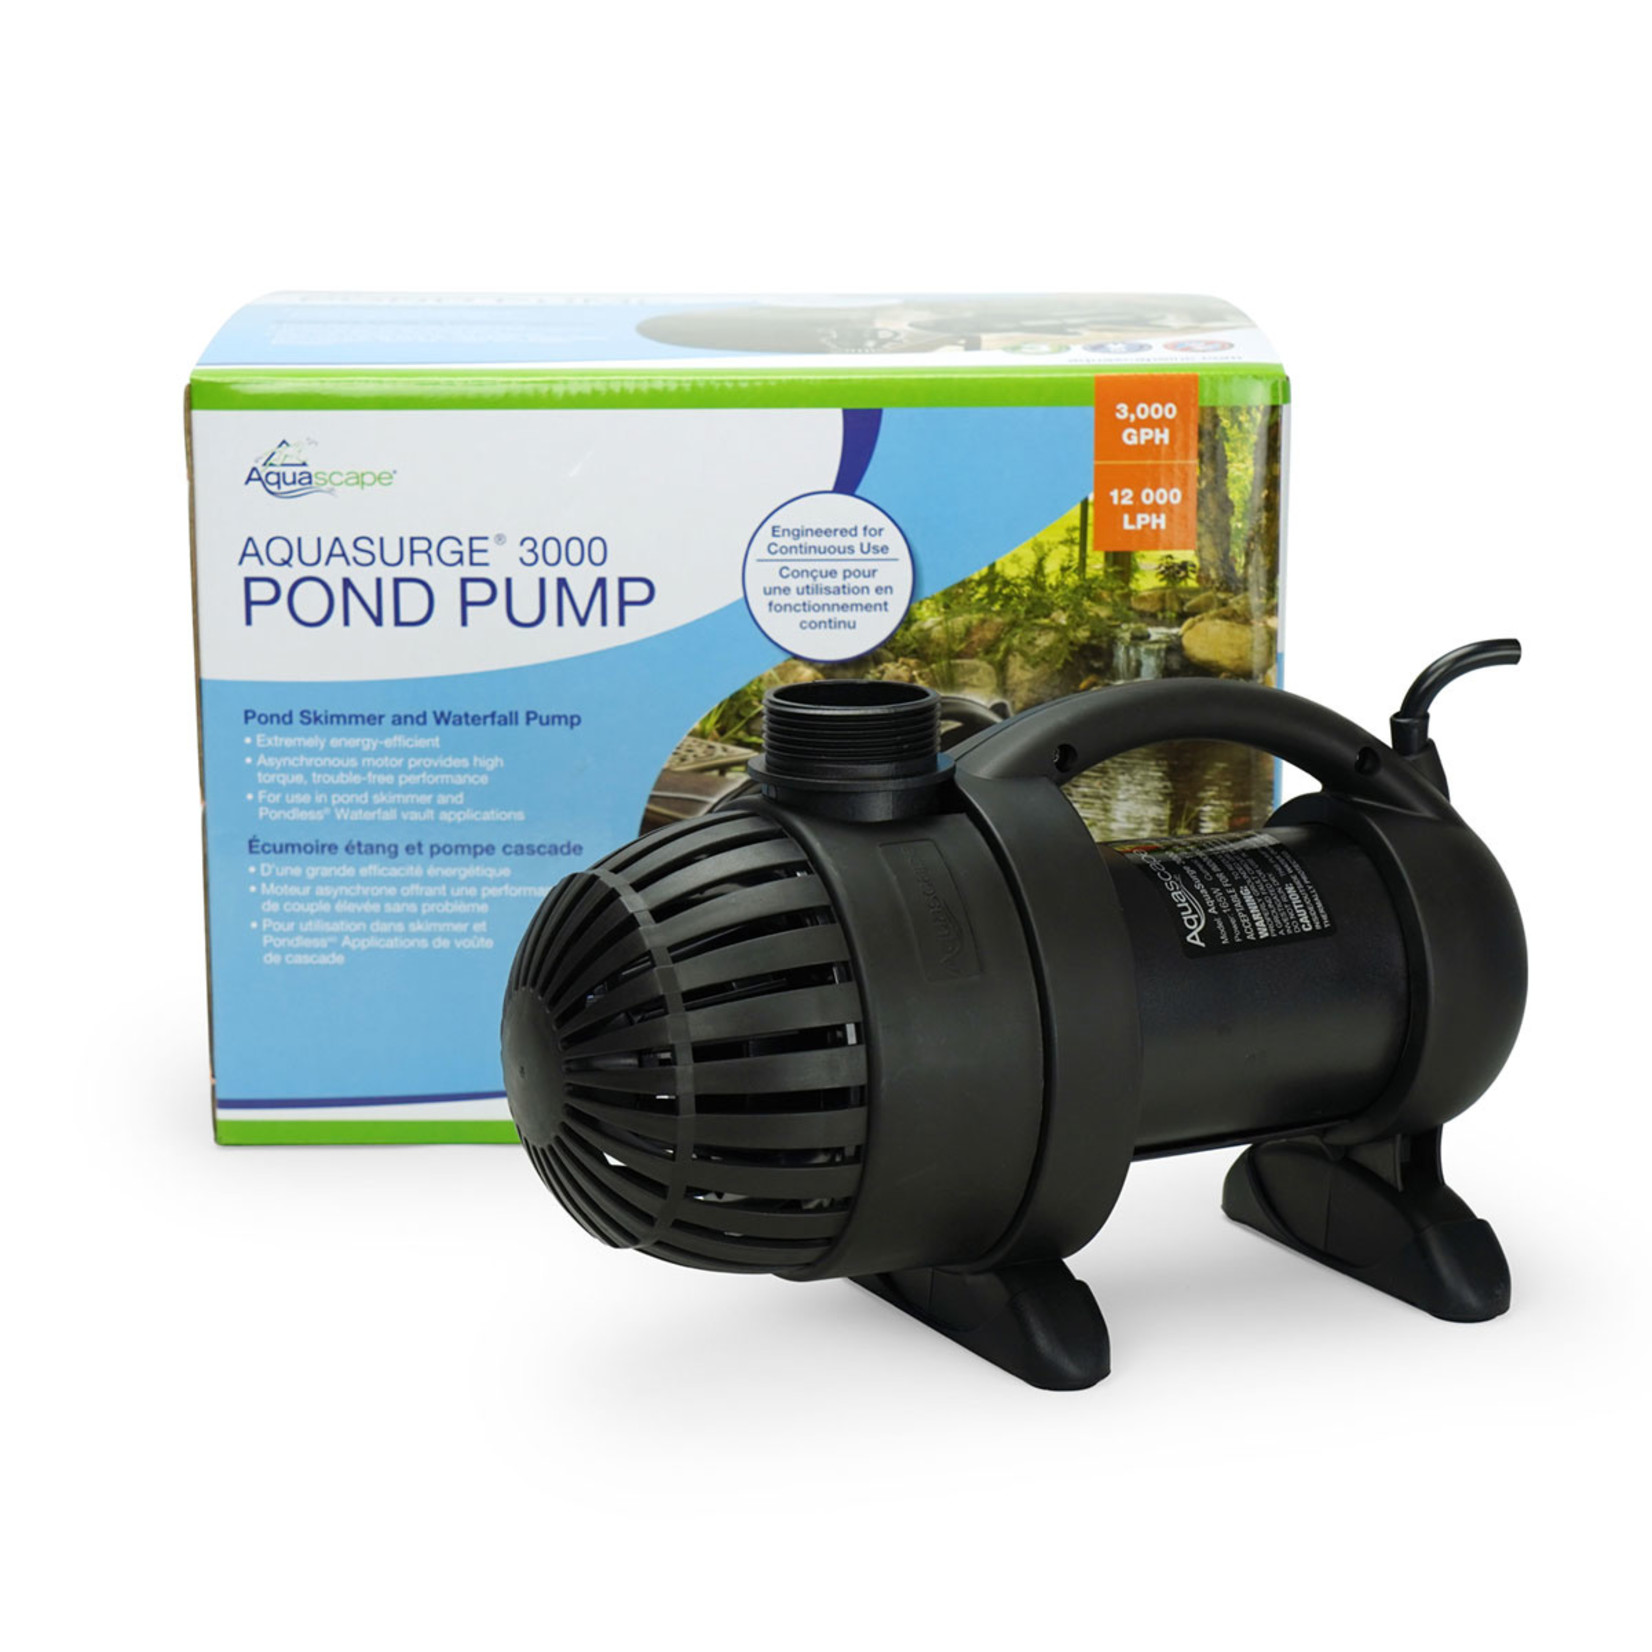 Aquascape Aquasurge 3000 Pond Pump